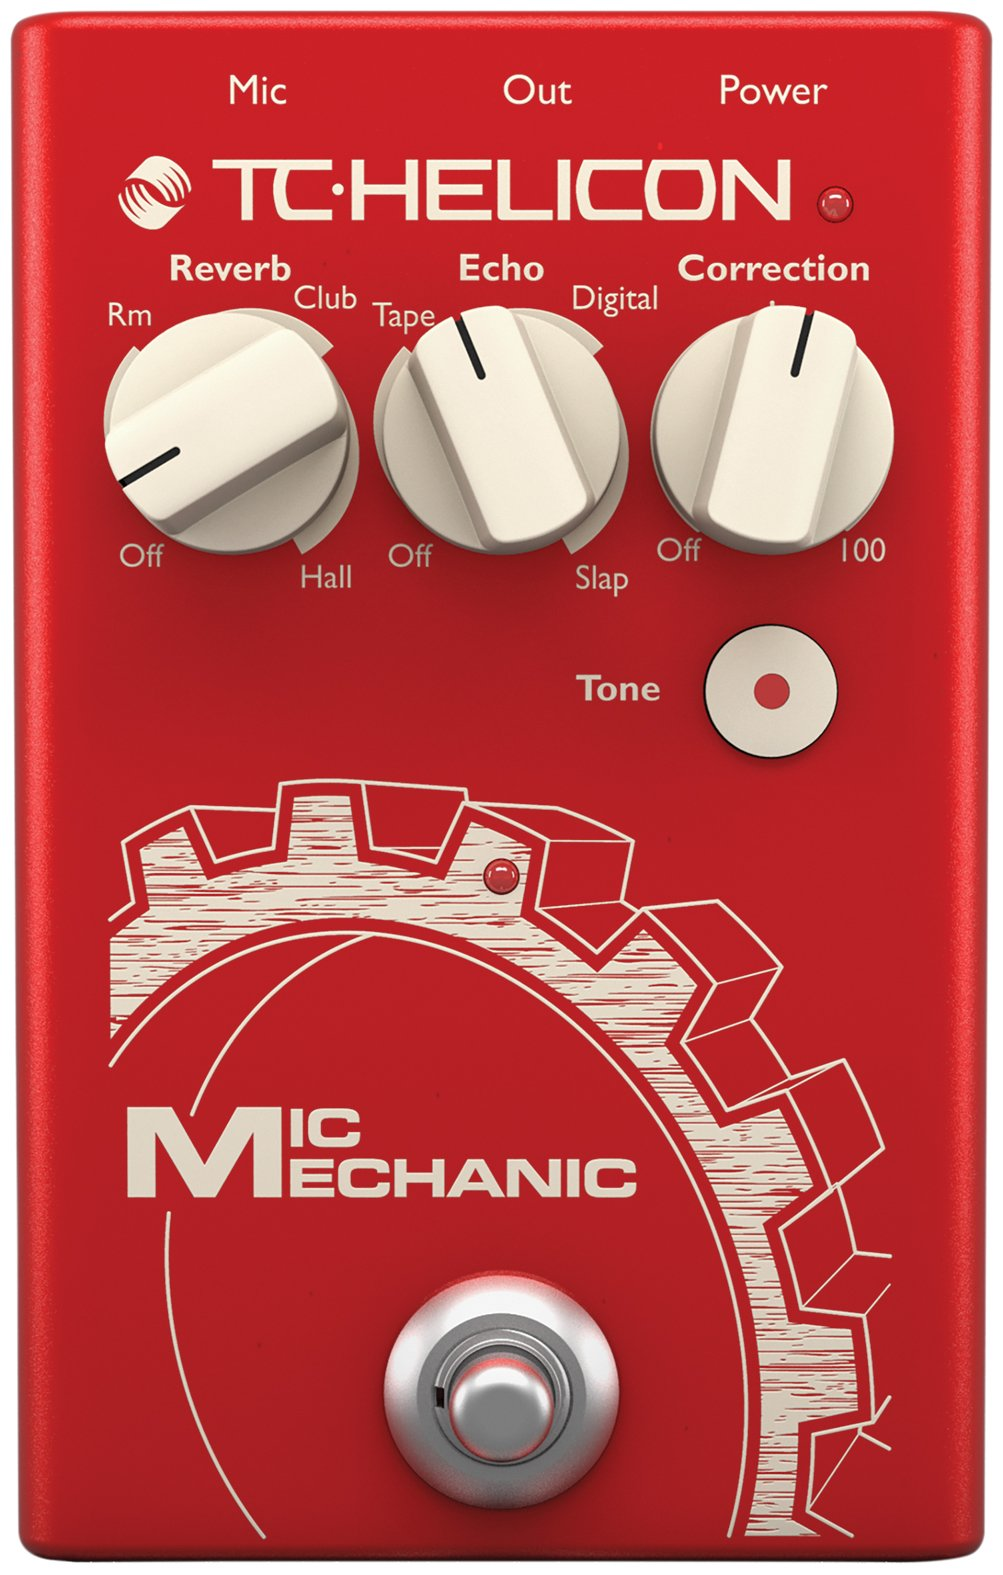 TC Helicon''TC Helicon VoiceTone Mic Mechanic 2 Reverb, Delay, Pitch Correction Pedal''